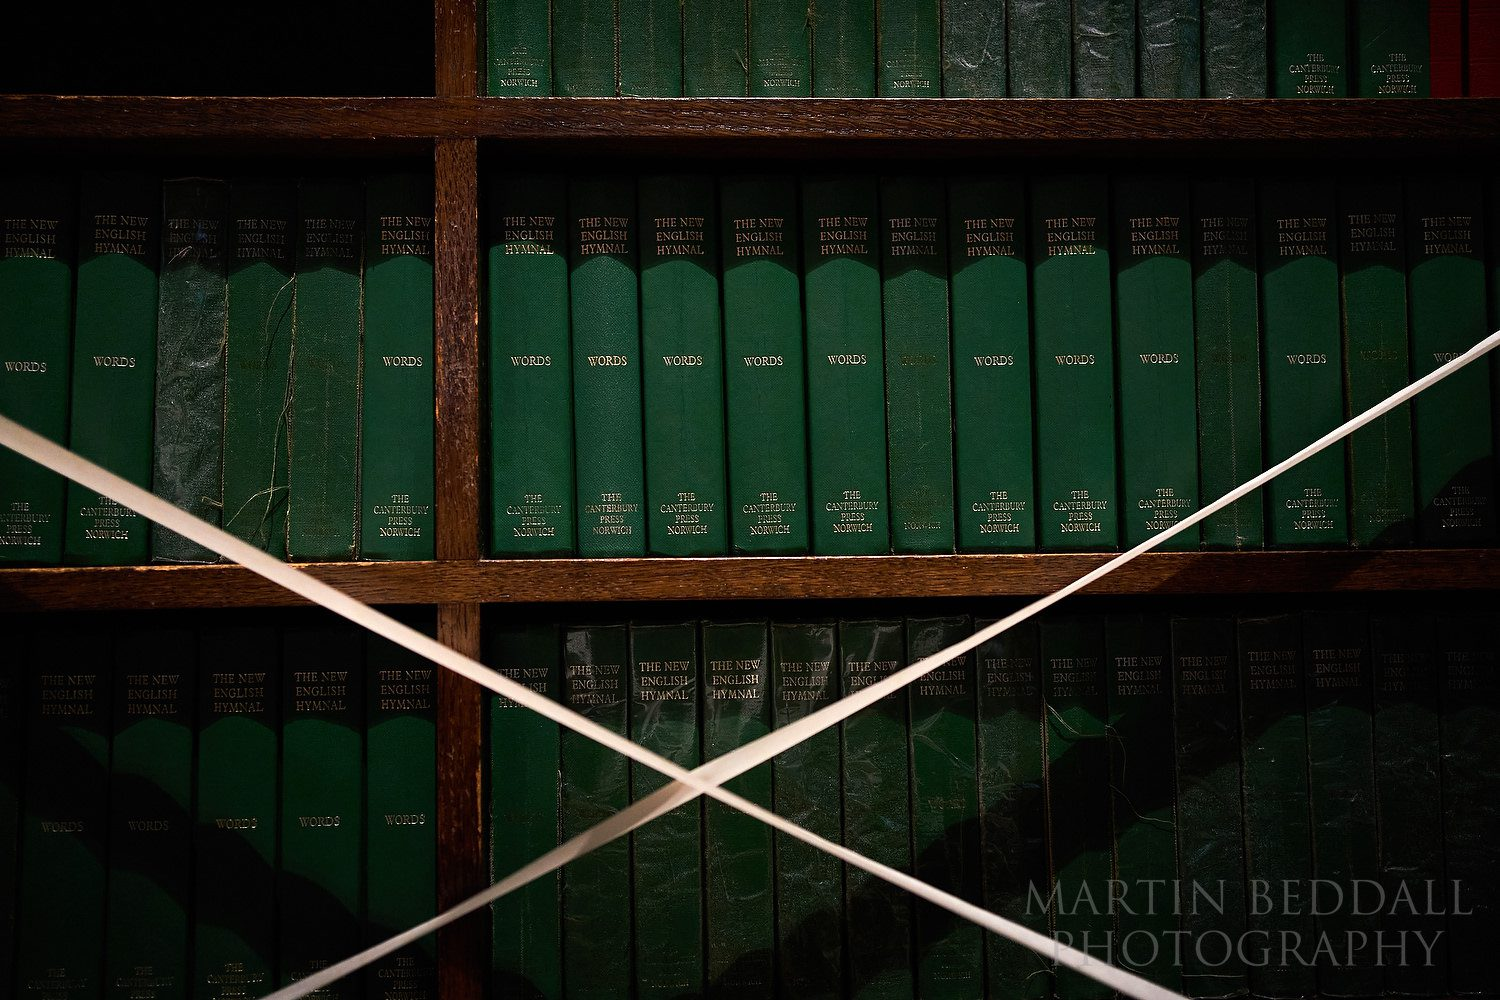 Hymn books taped off due to covid-19 restrictions at post-lockdown wedding